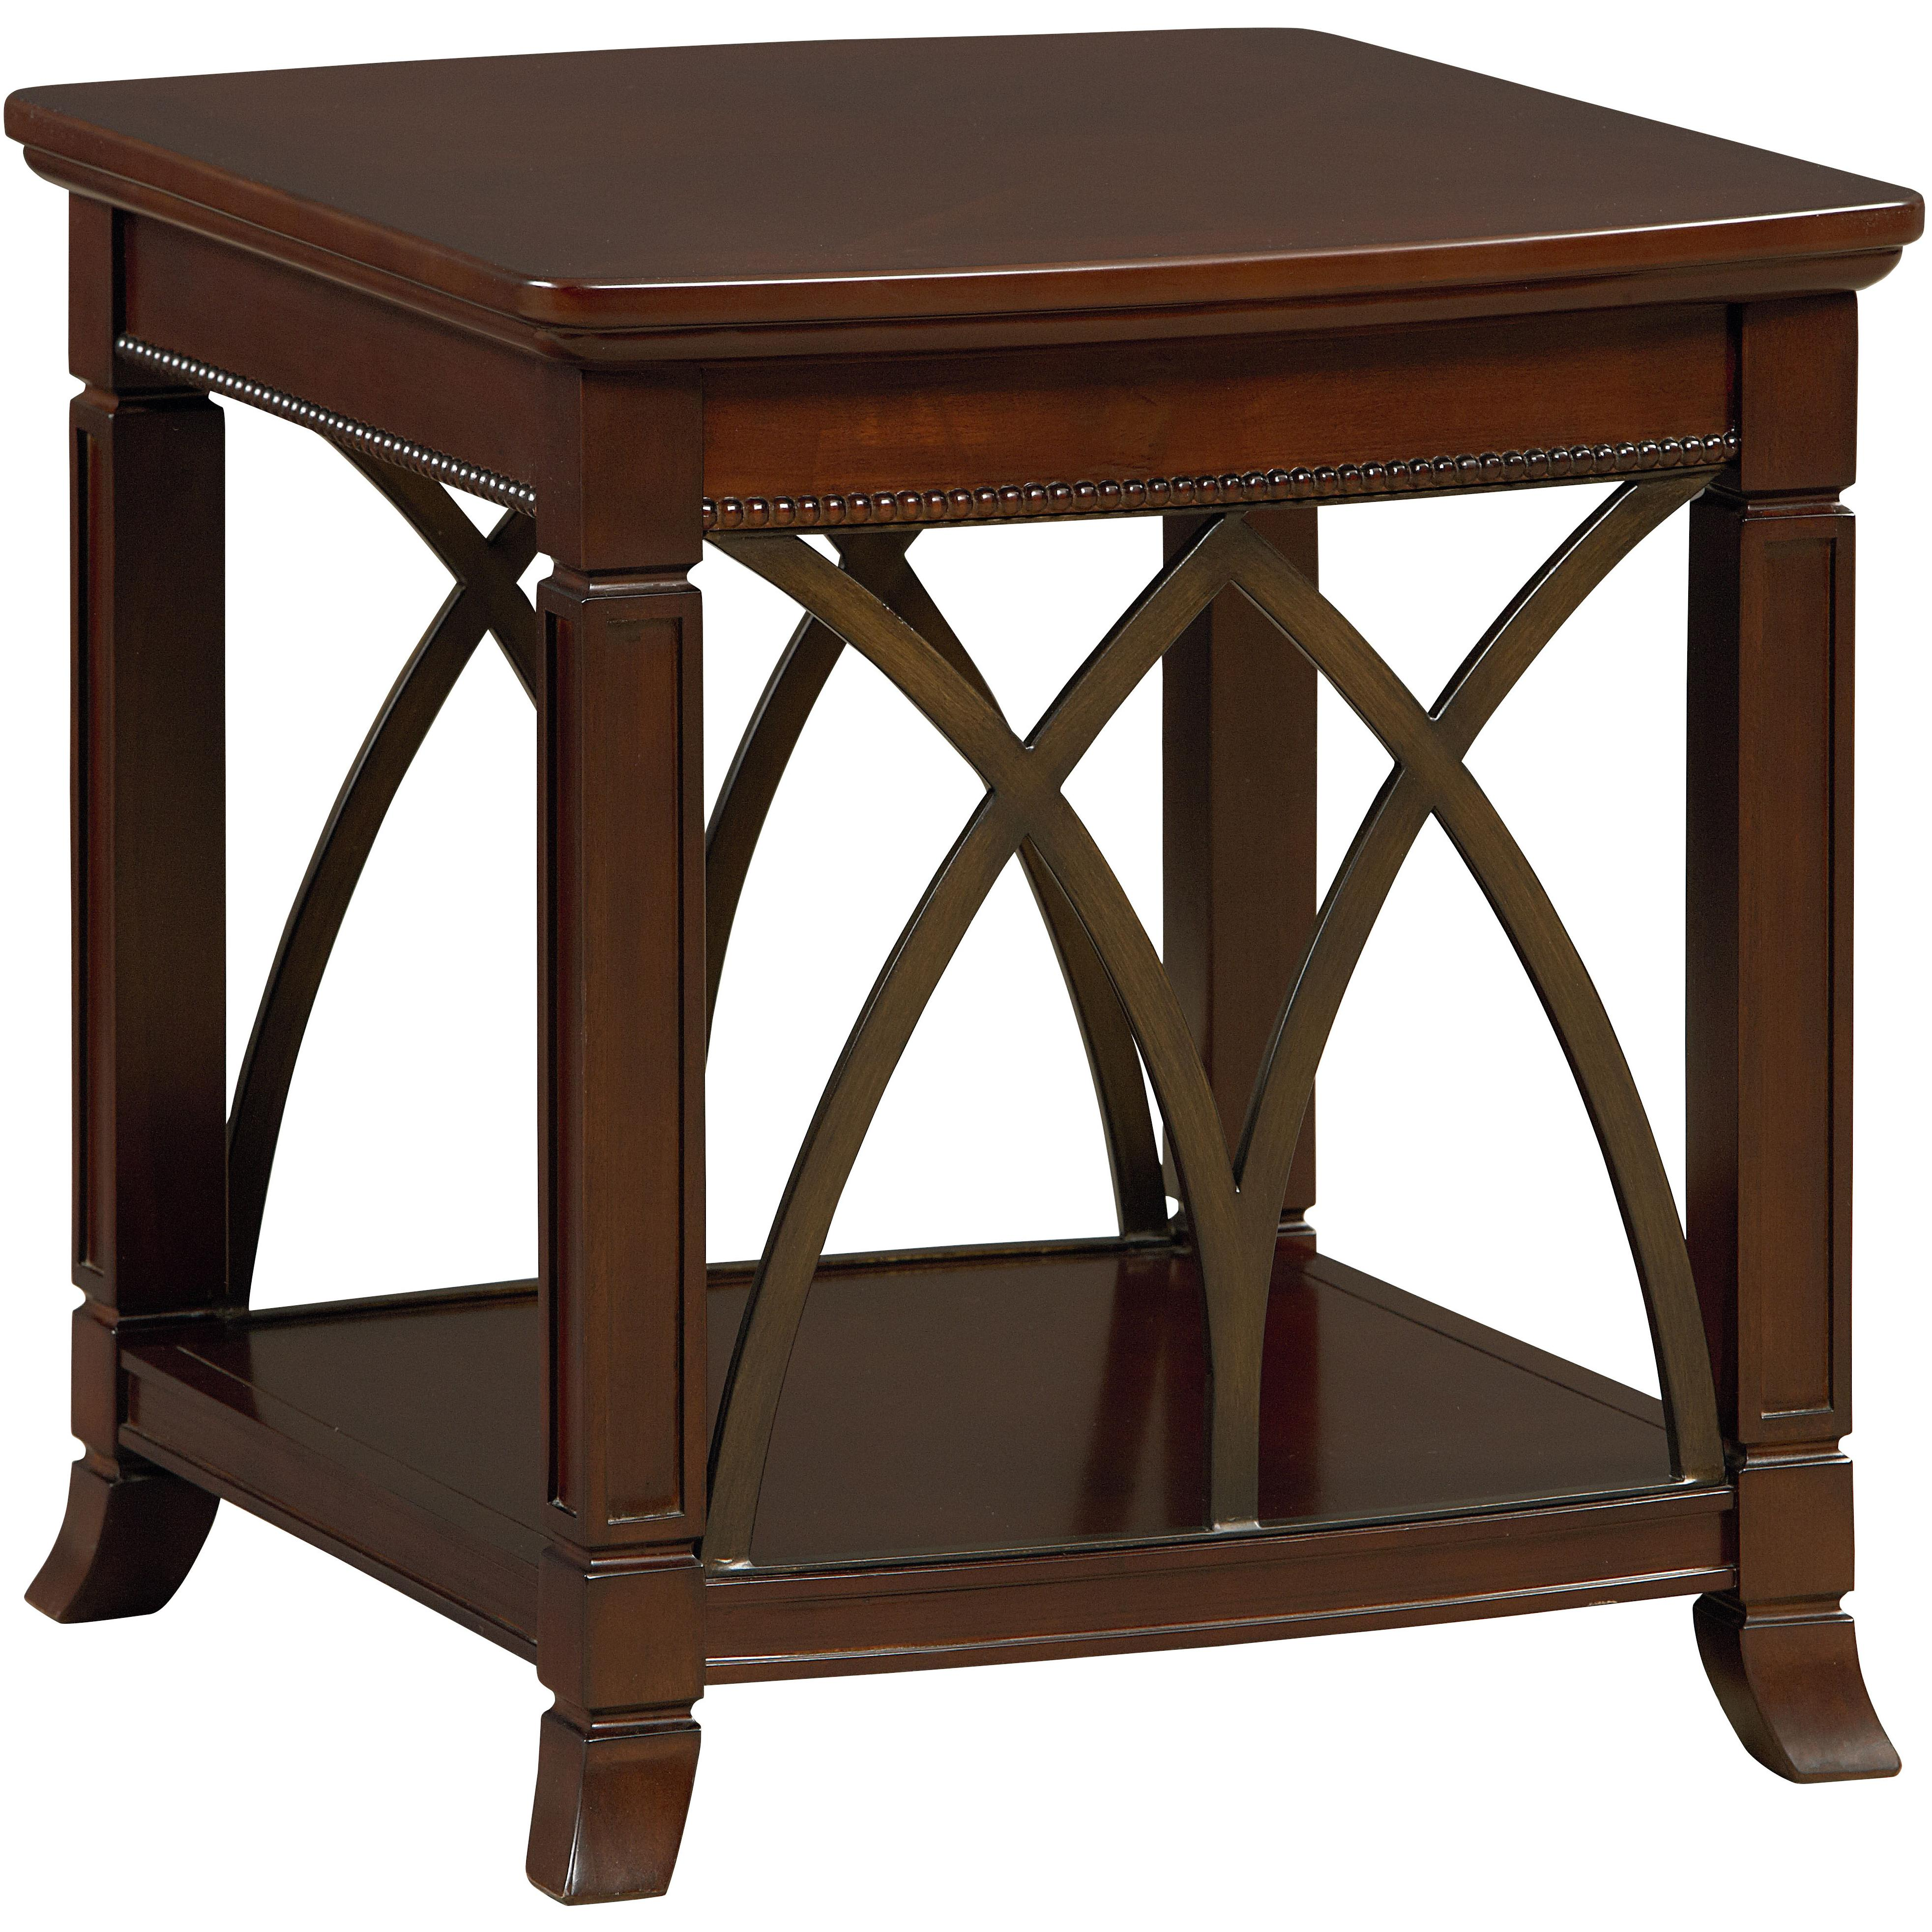 Standard Furniture Abbey End Table - Item Number: 27112